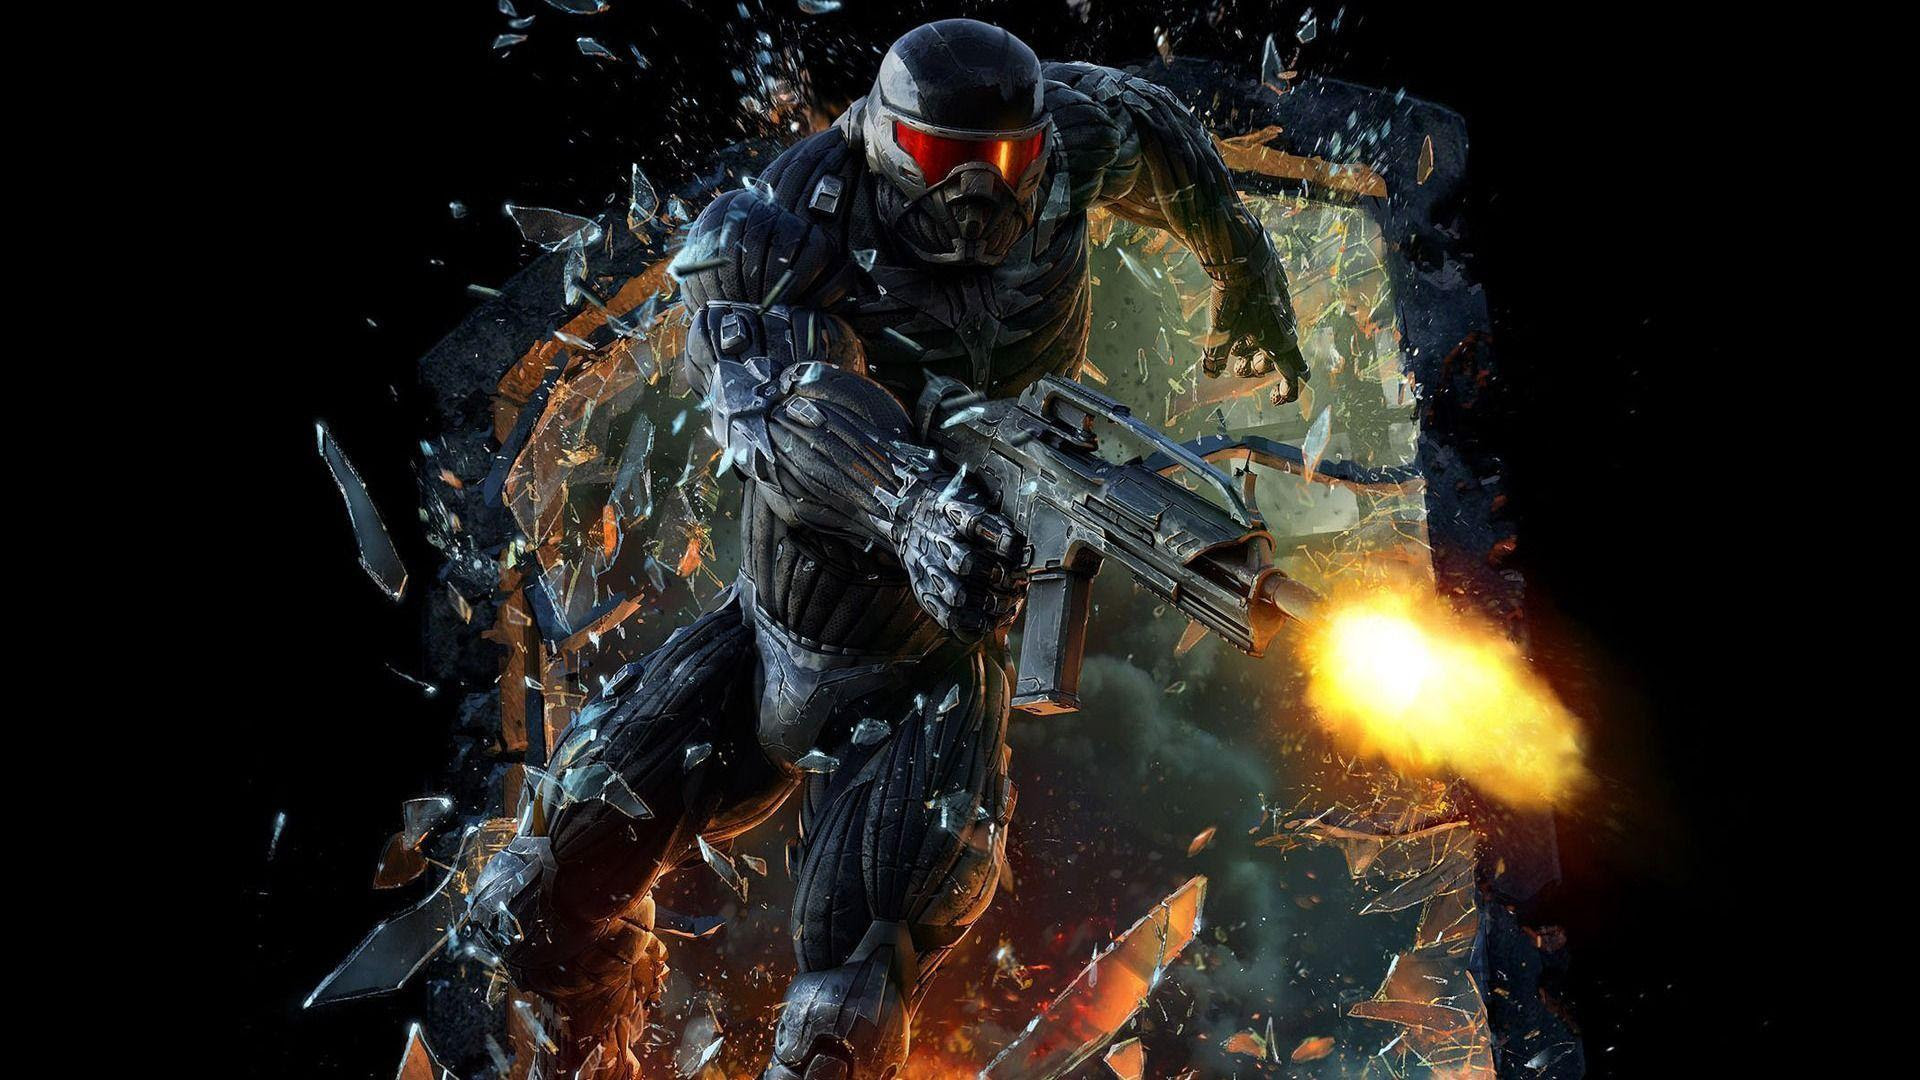 Cool Game Backgrounds  Wallpaper Cave